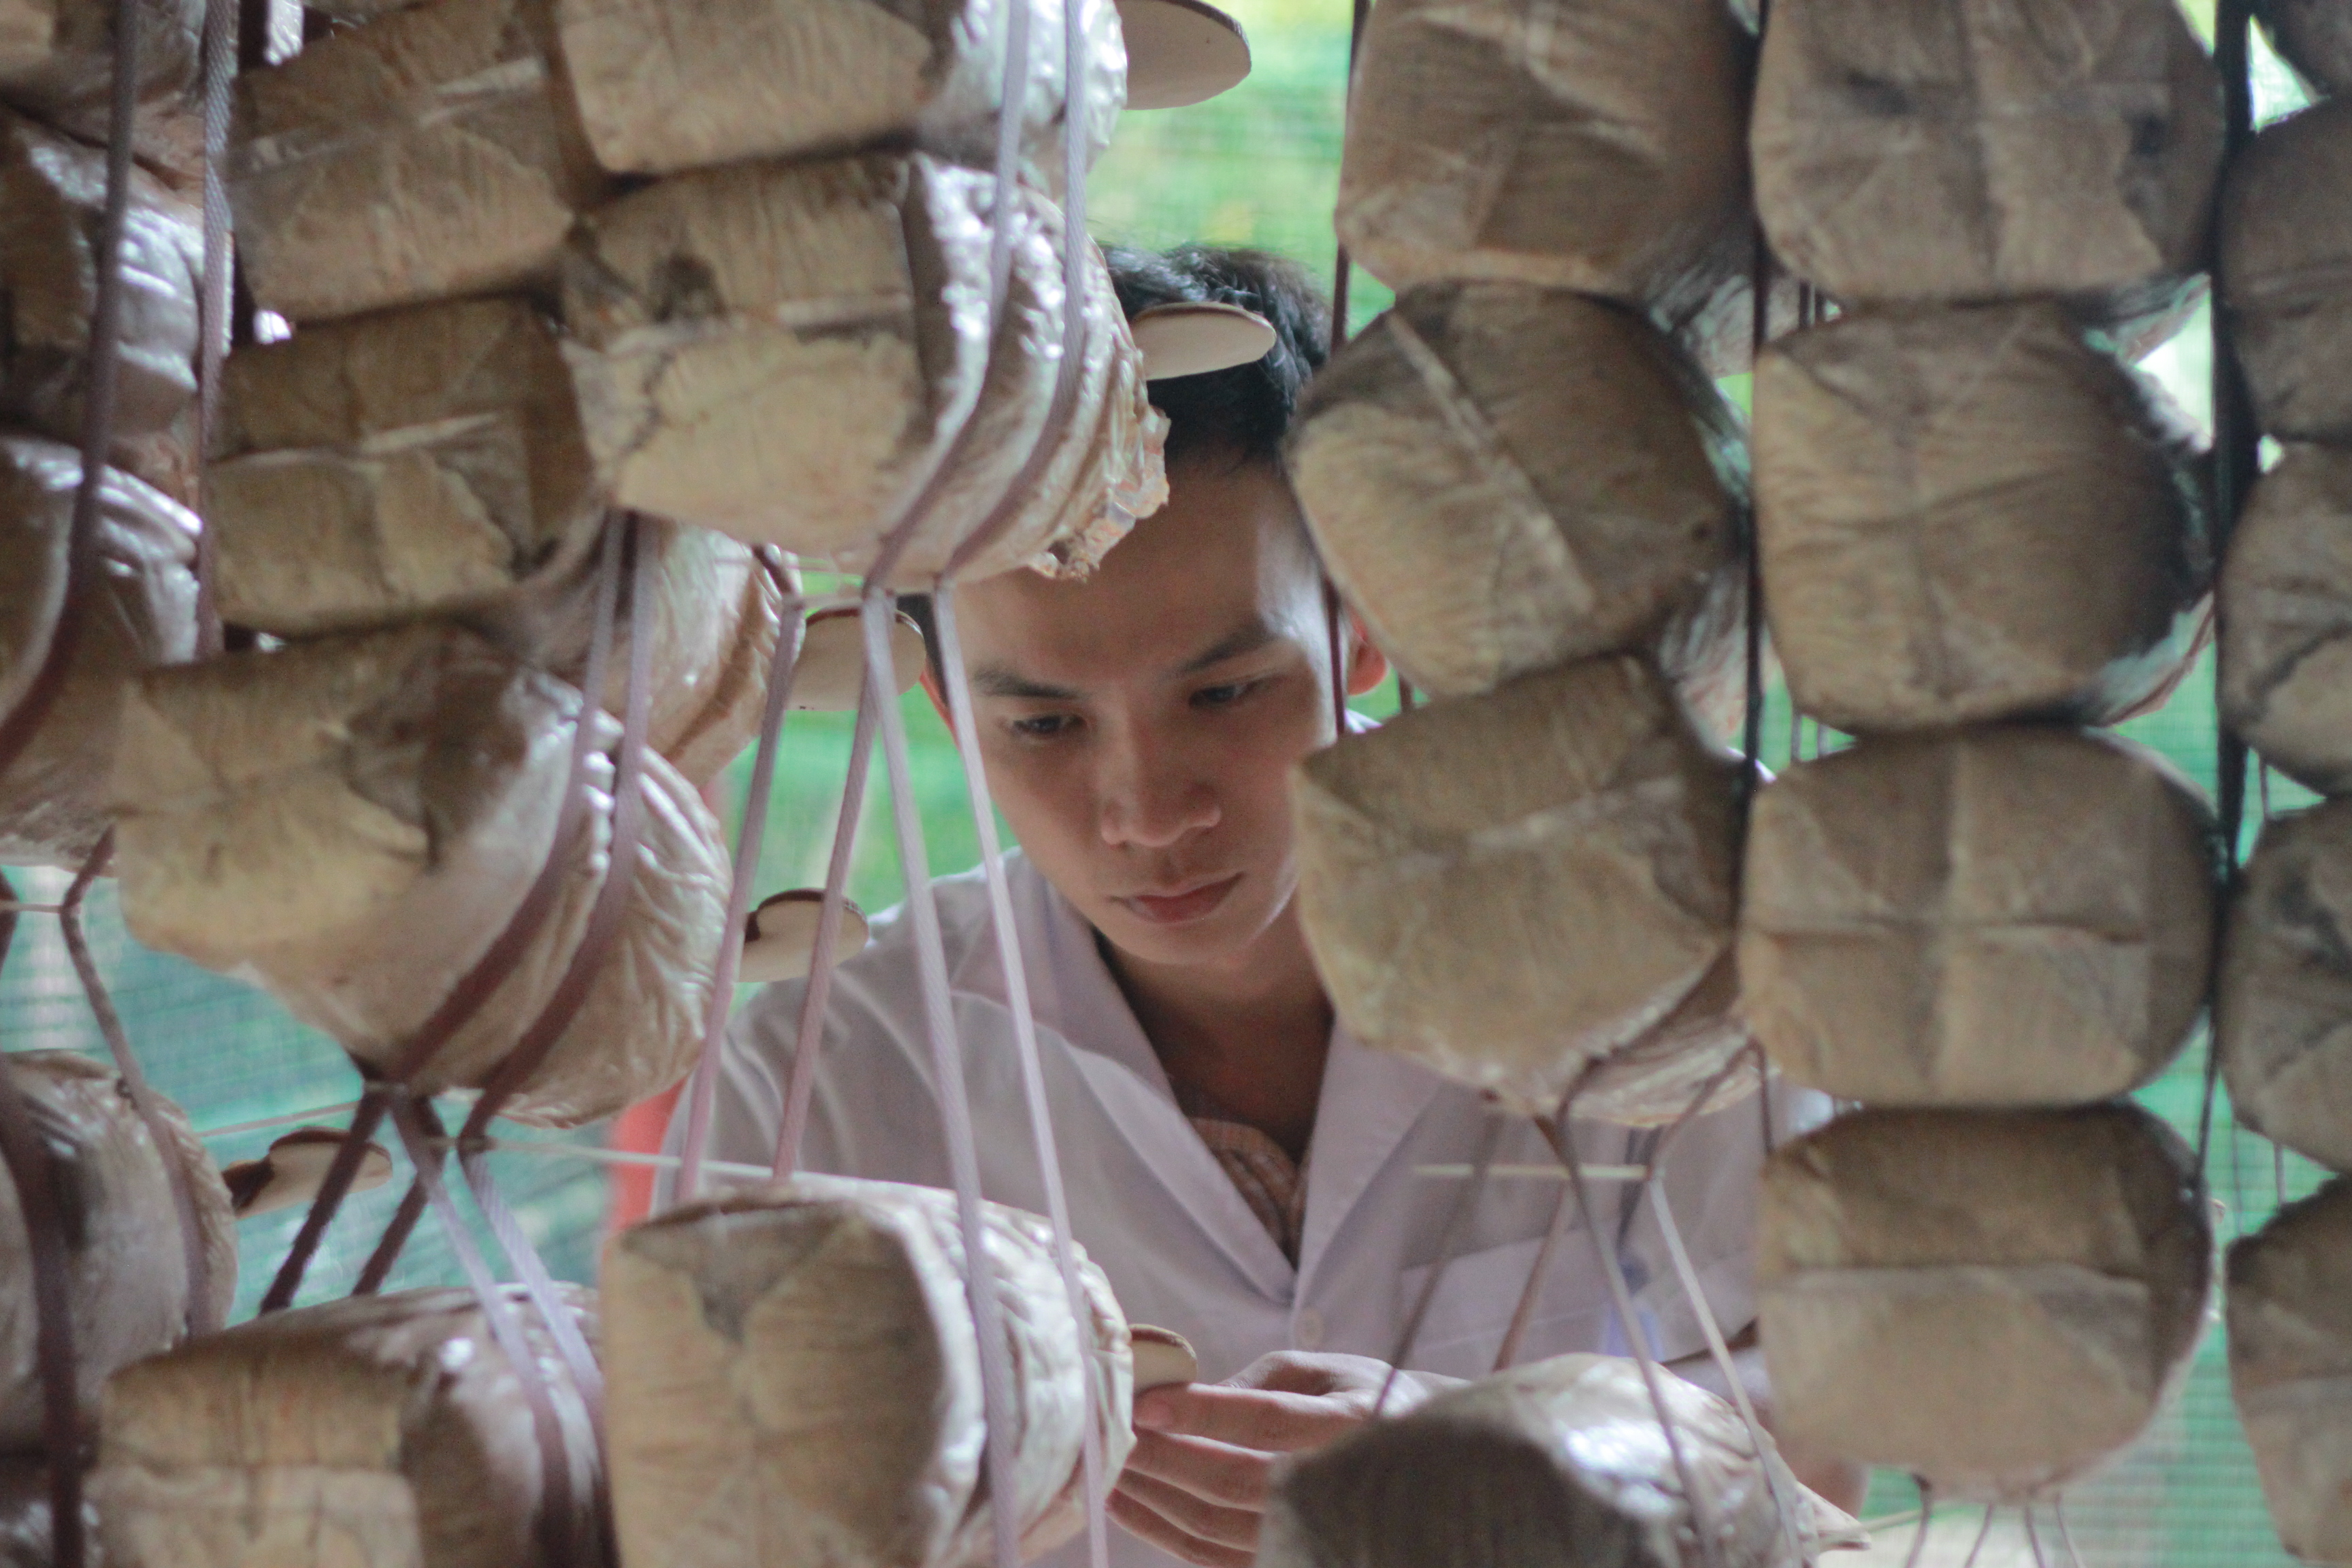 Ngo Kim Lai, the first person to grow caterpillar fungus in Vietnam